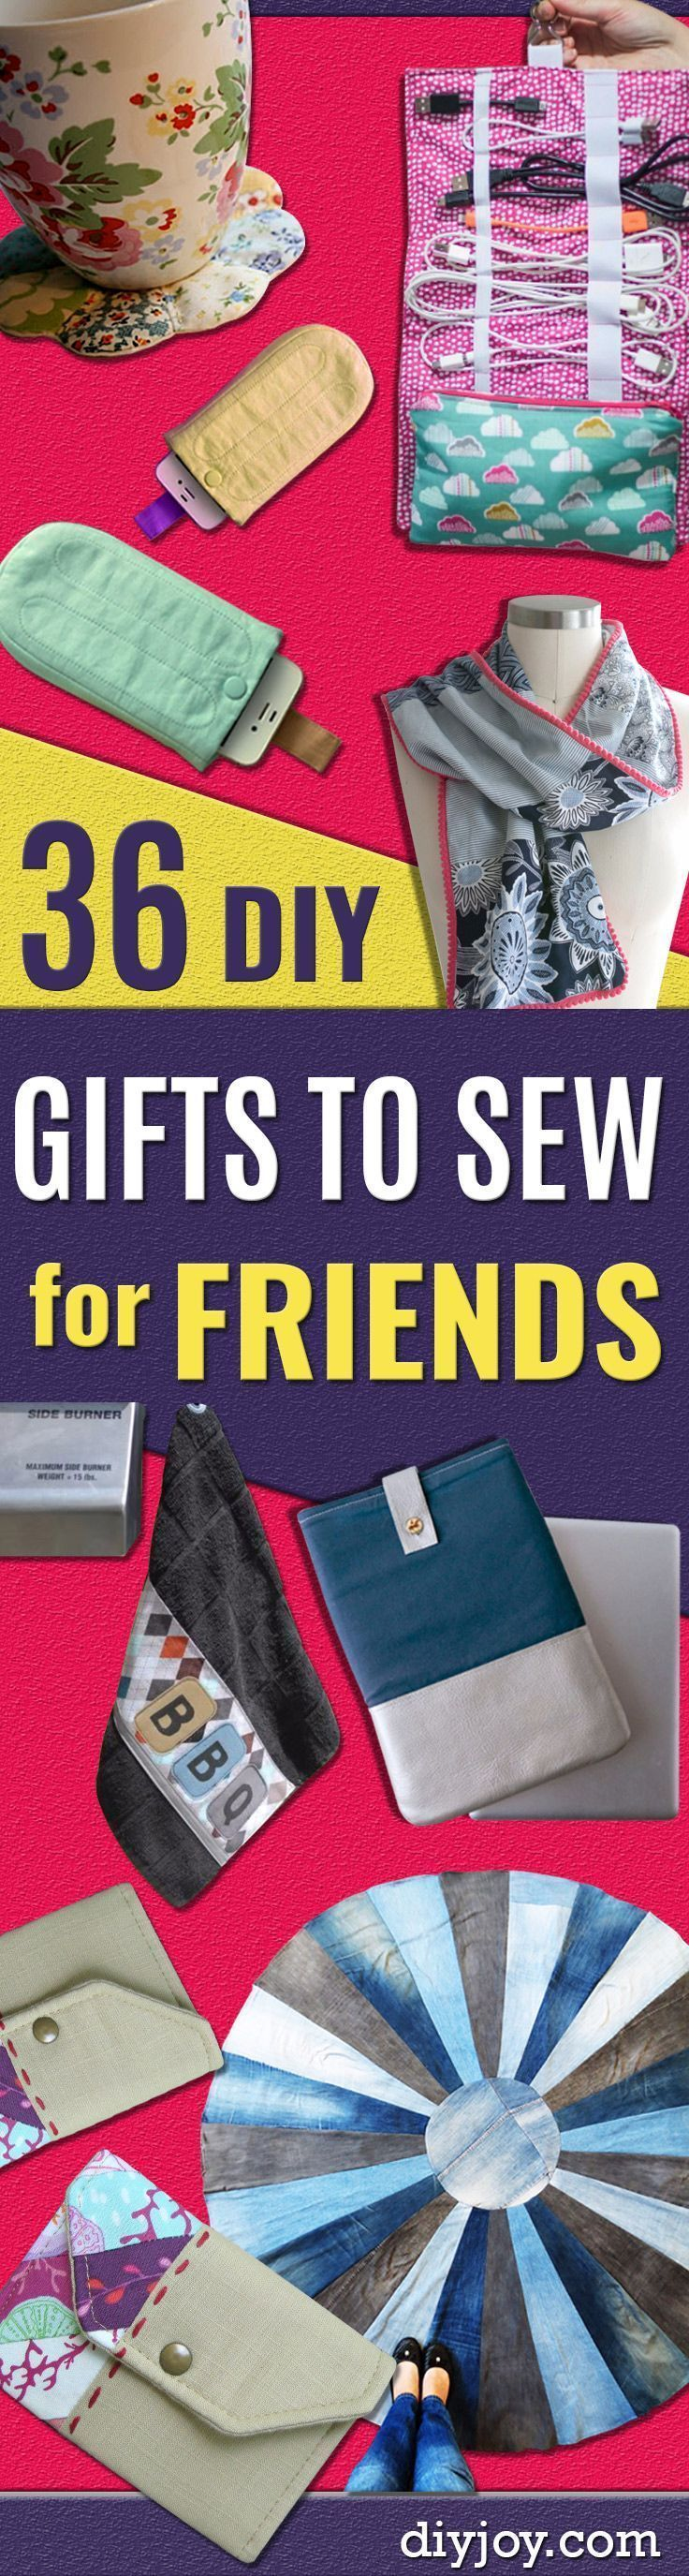 DIY Gifts To Sew For Friends - Quick and Easy Sewing Projects and Free Patterns for Best Gift Ideas and Presents - Creative Step by Step Tutorials for Beginners - Cute Home Decor, Accessories, Kitchen Crafts and DIY Fashion Ideas http://diyjoy.com/diy-gifts-to-sew-for-friends